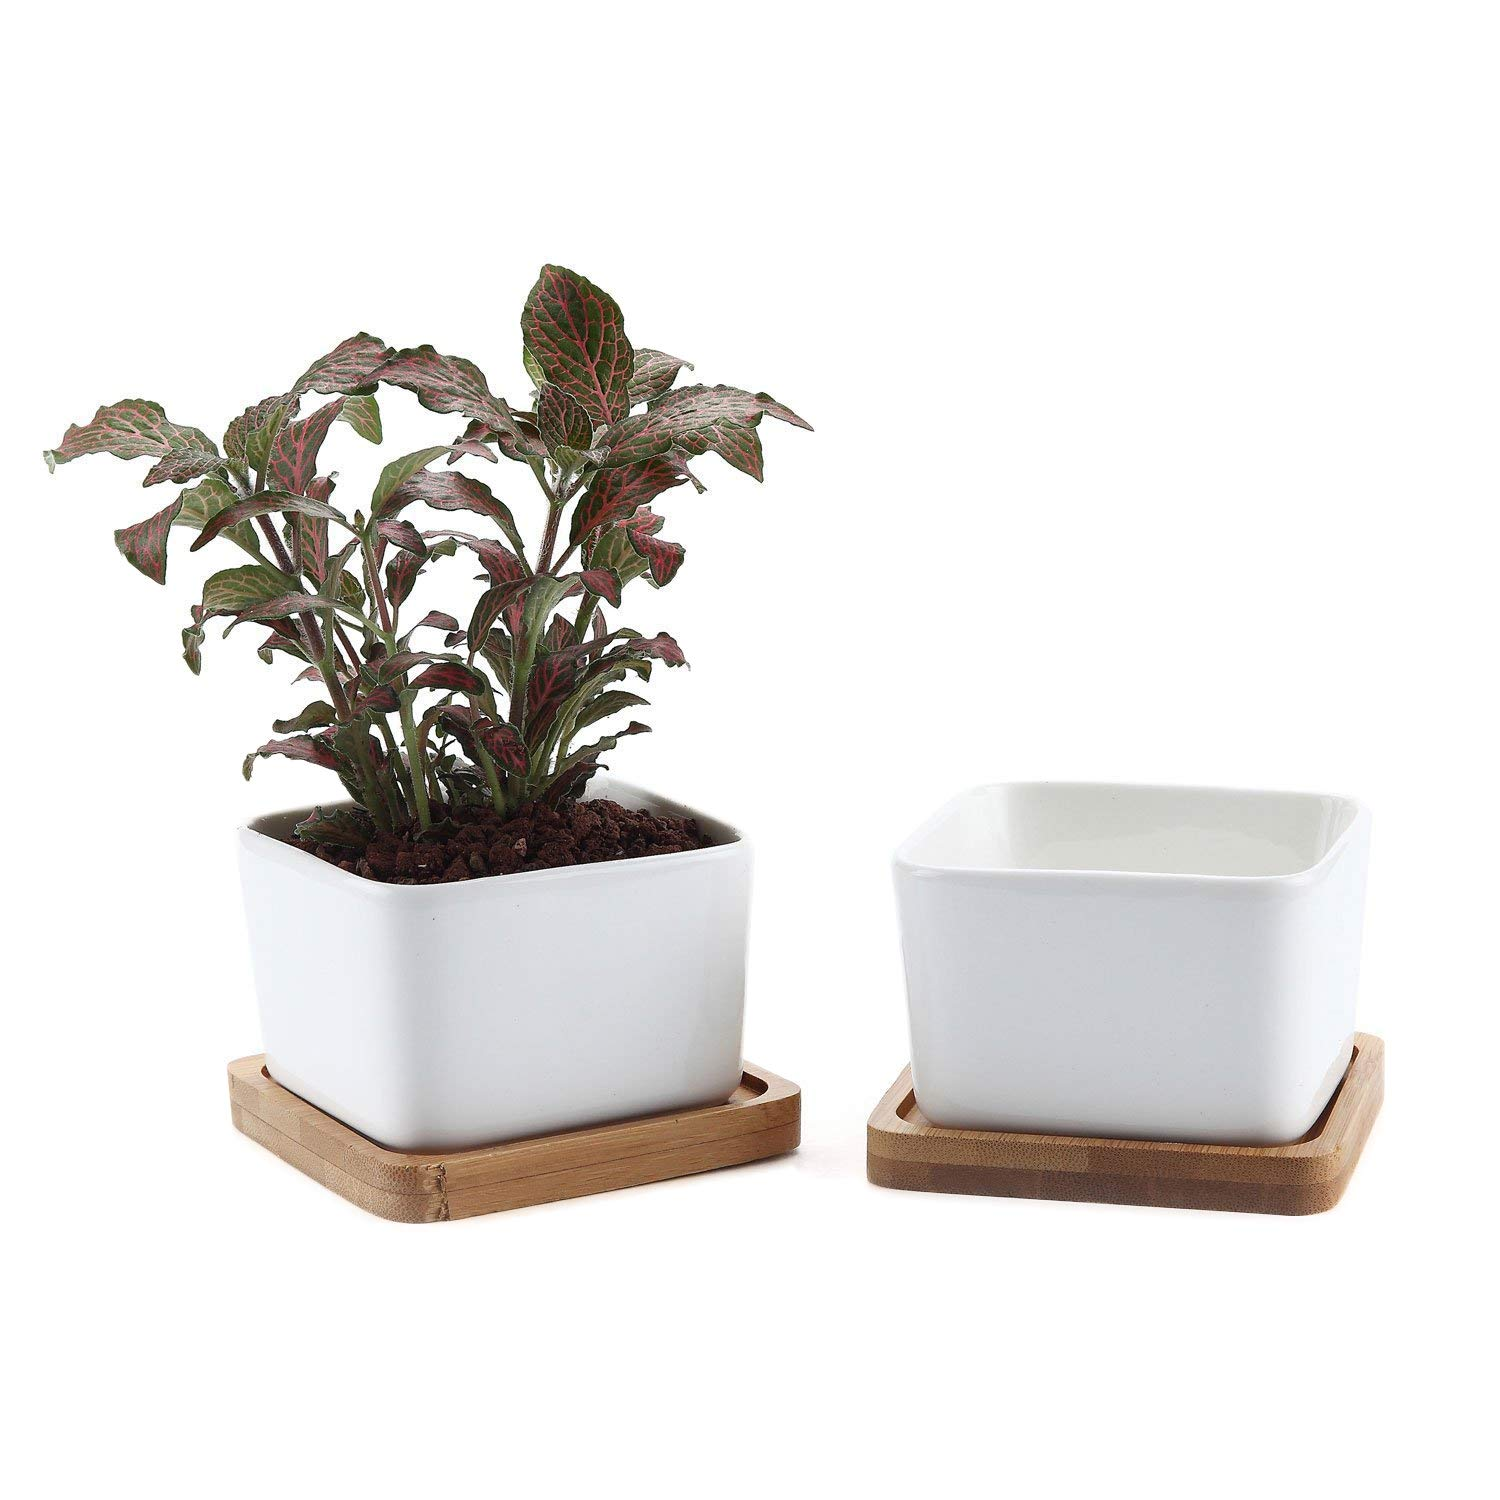 T4U 3.5 Inch Ceramic White Square NO.1 Succulent Plant Pot Cactus Plant Pot with Free Bamboo Tray Package 1 Pack of 2